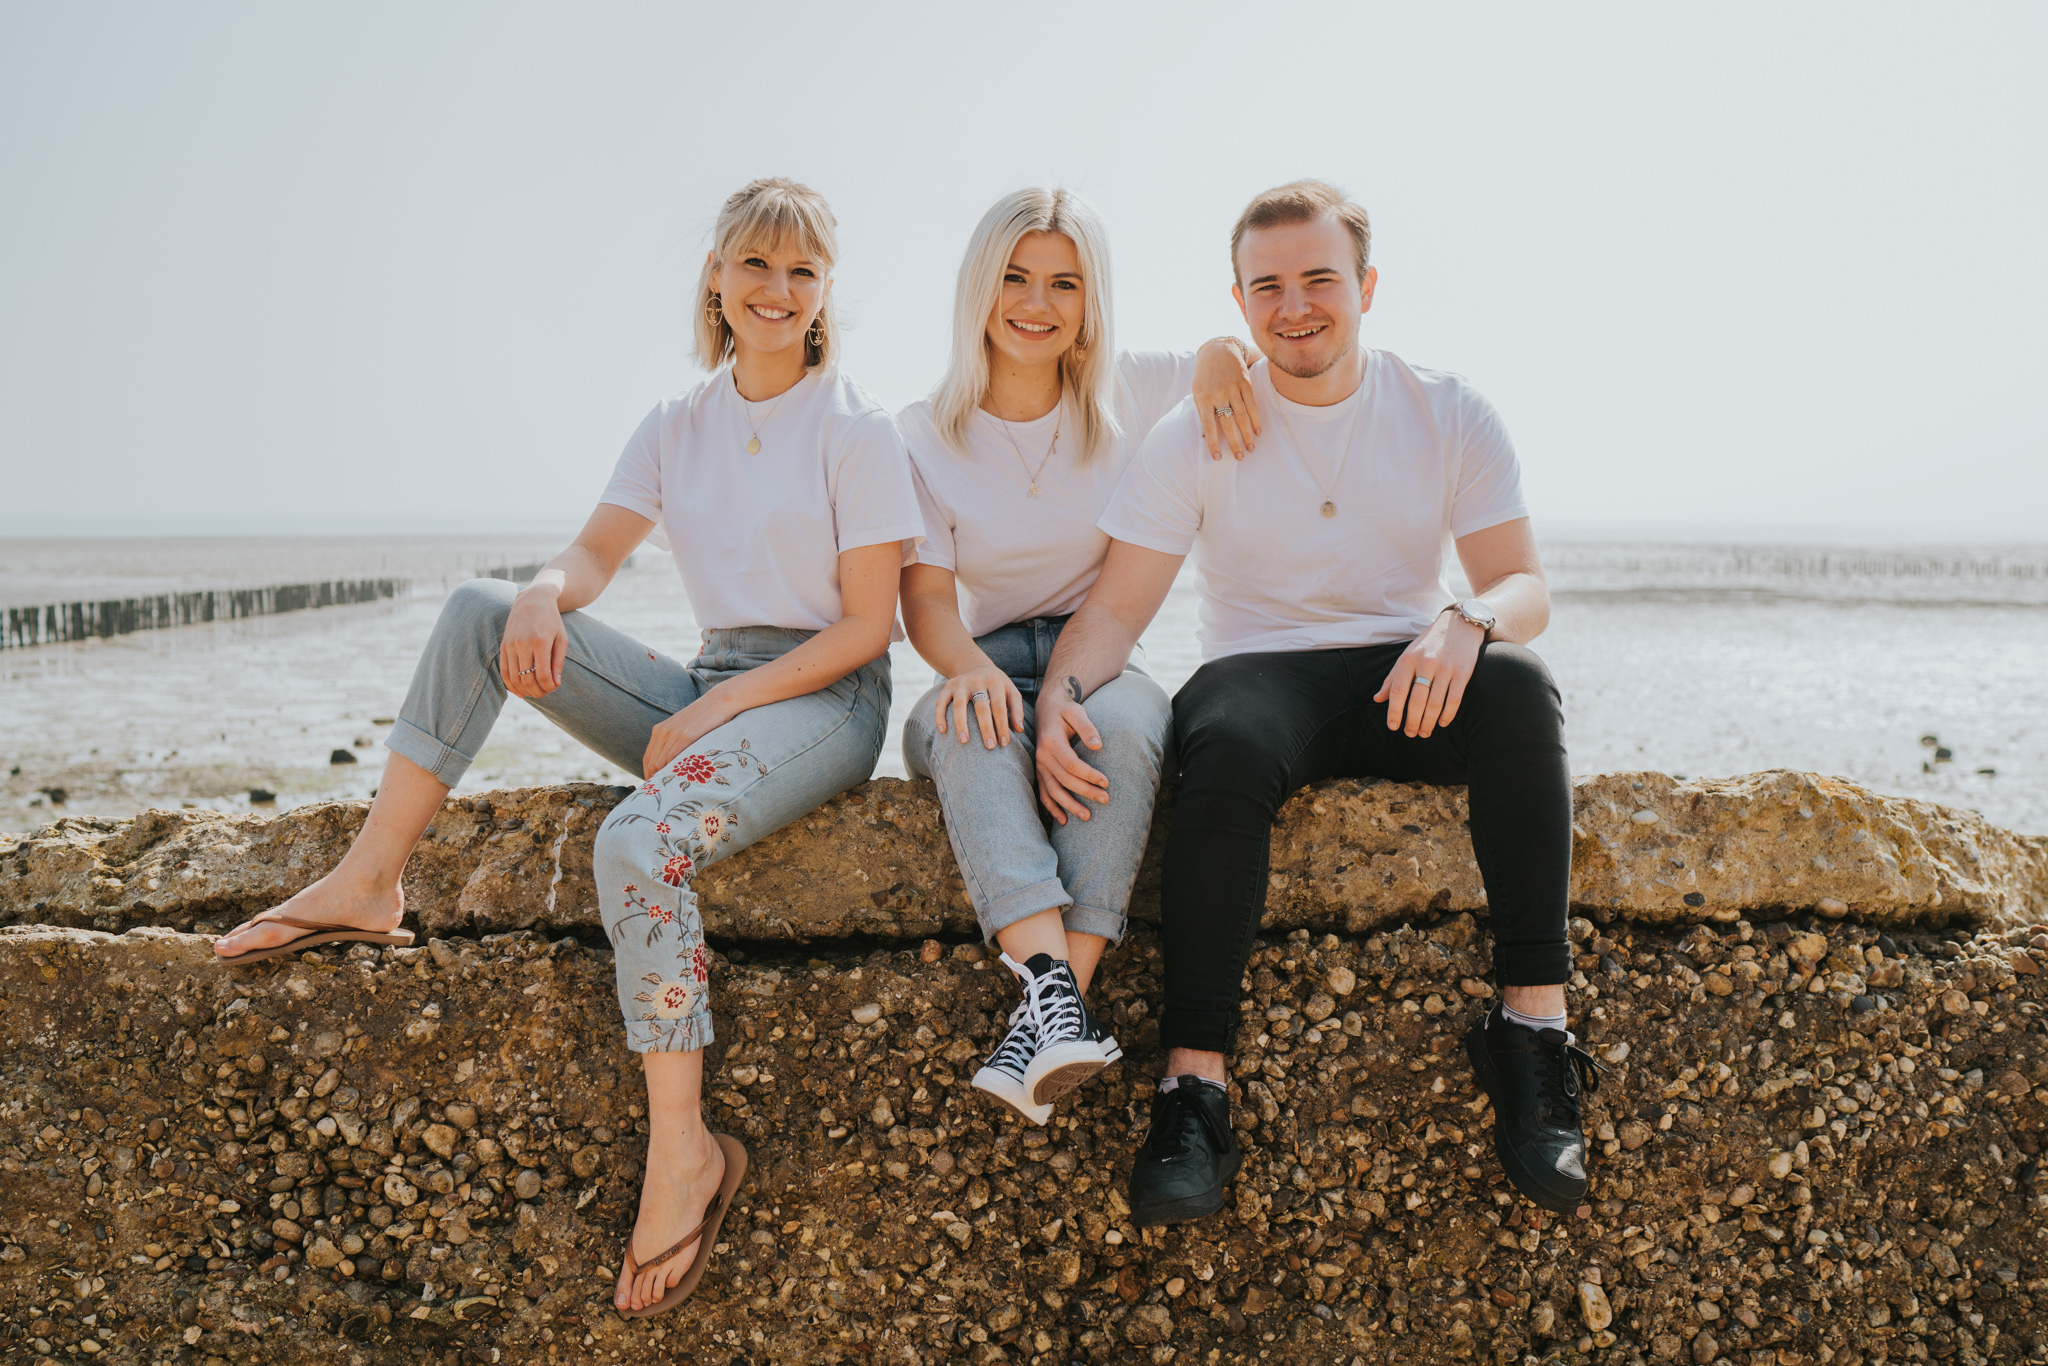 penny-family-cudmore-grove-beach-family-session-grace-elizabeth-colchester-essex-alternative-wedding-lifestyle-photographer-essex-suffolk-devon-25.jpg